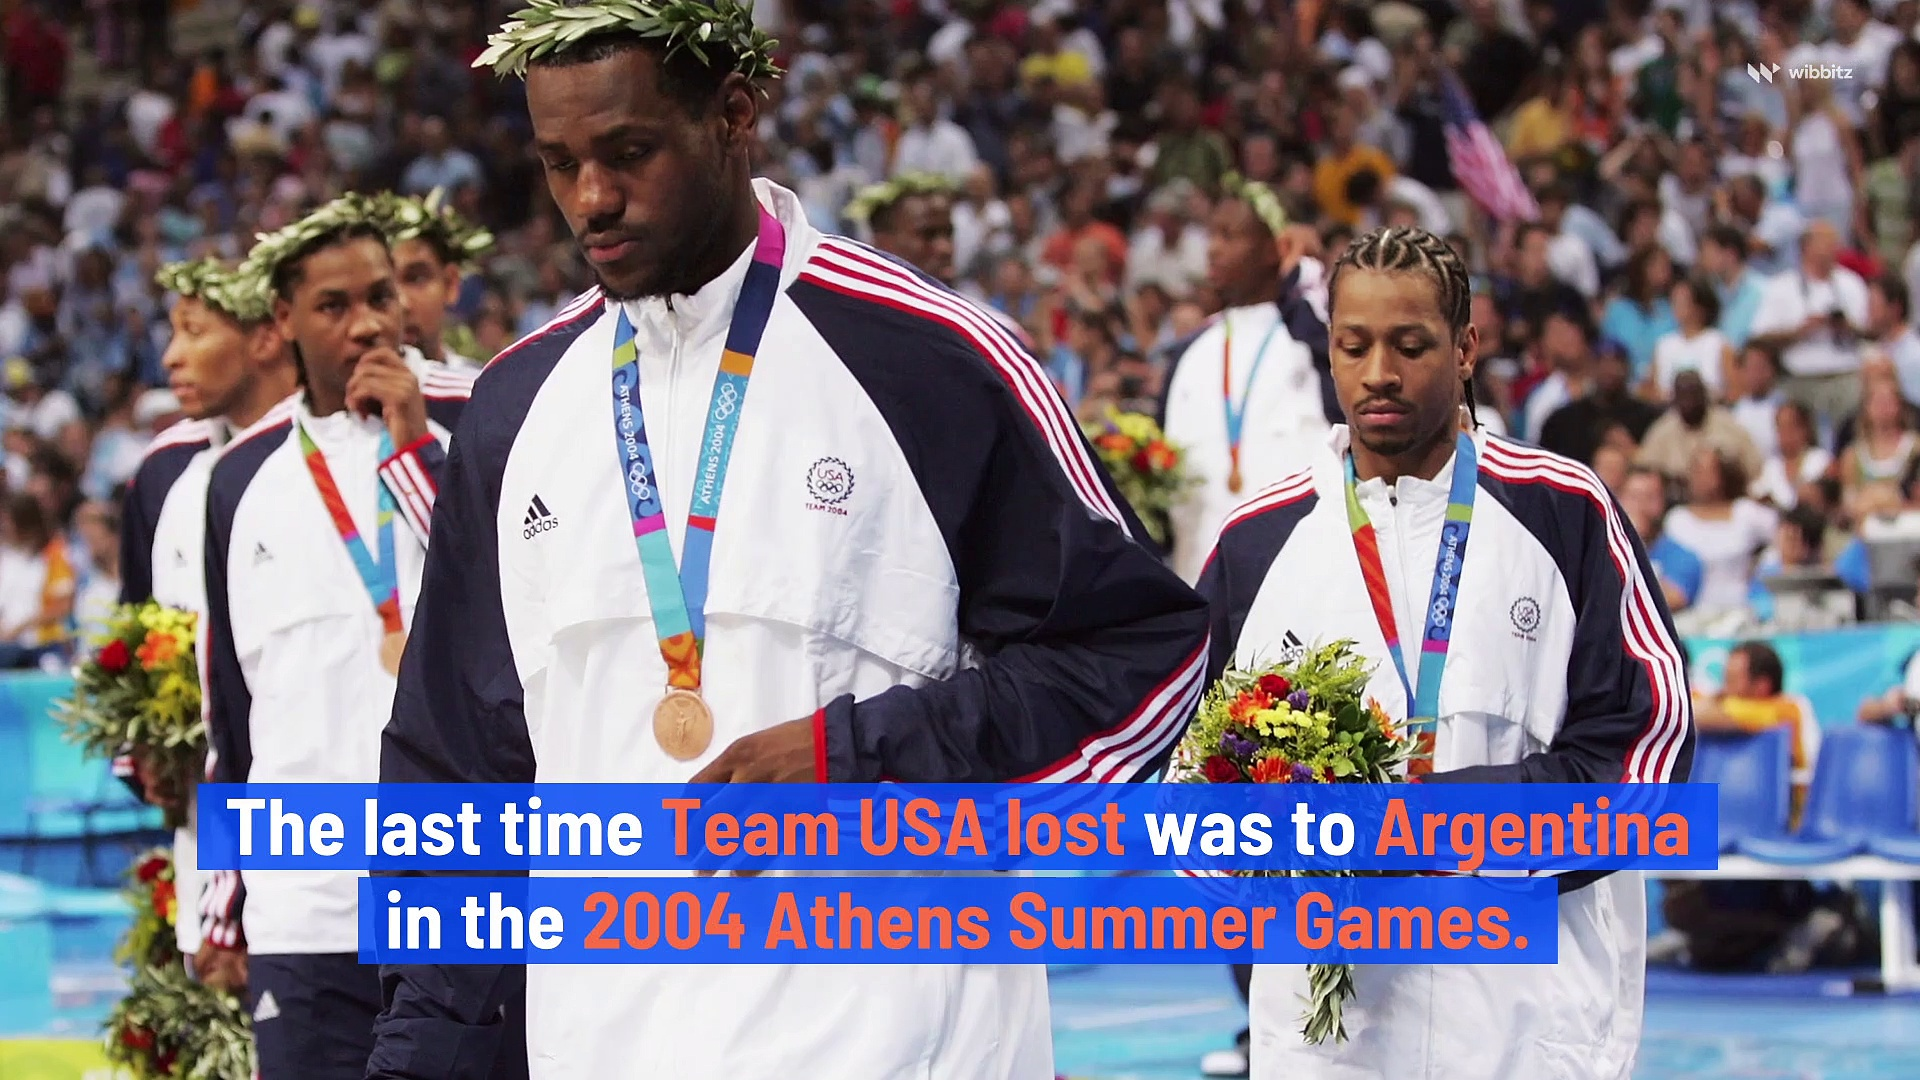 US Men's Basketball Team Faces First Olympic Loss Since 2004